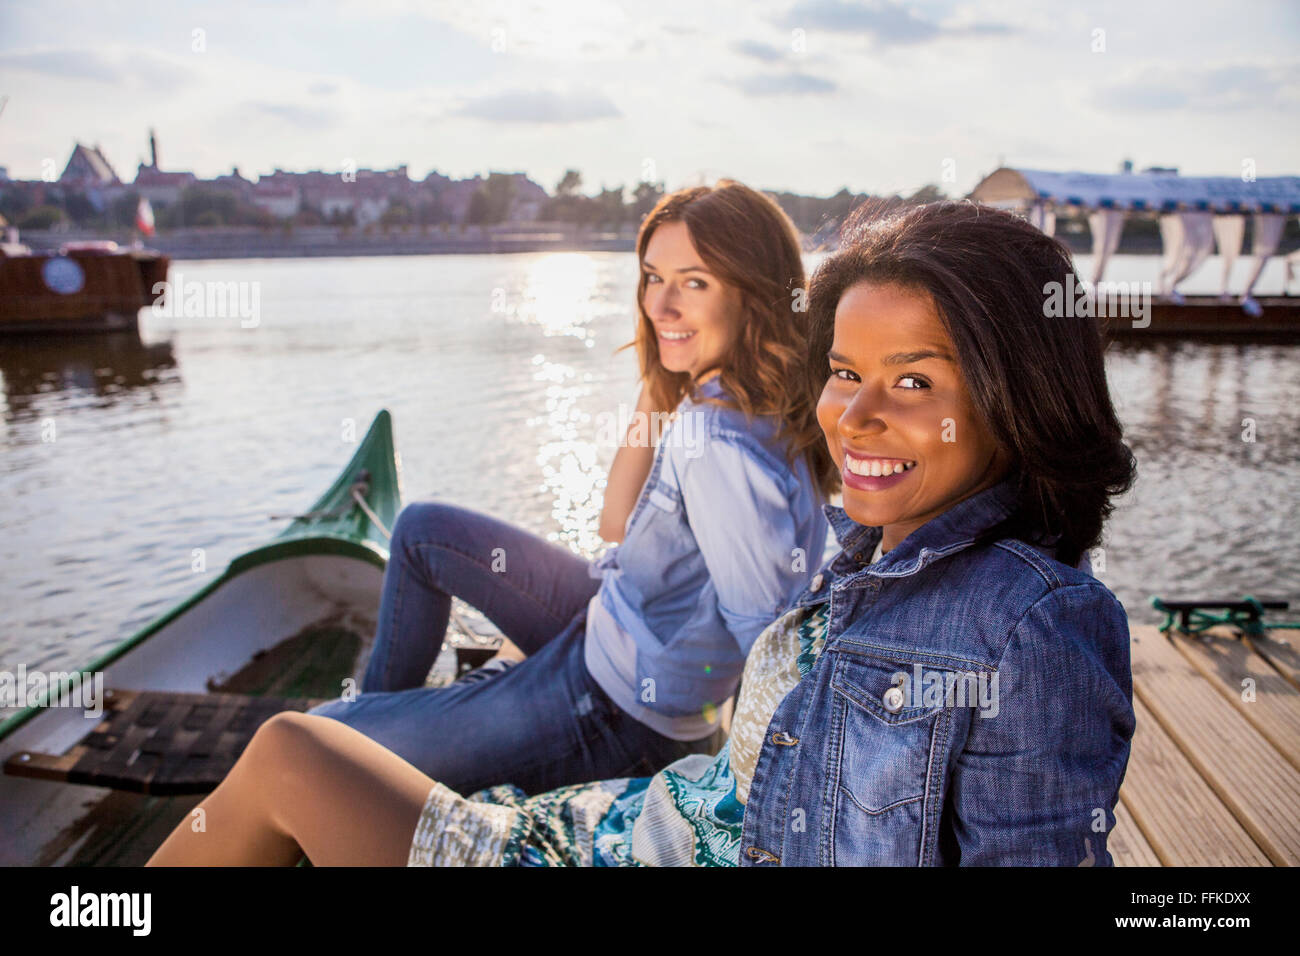 Portrait of two women on a city break in Warsaw - Stock Image